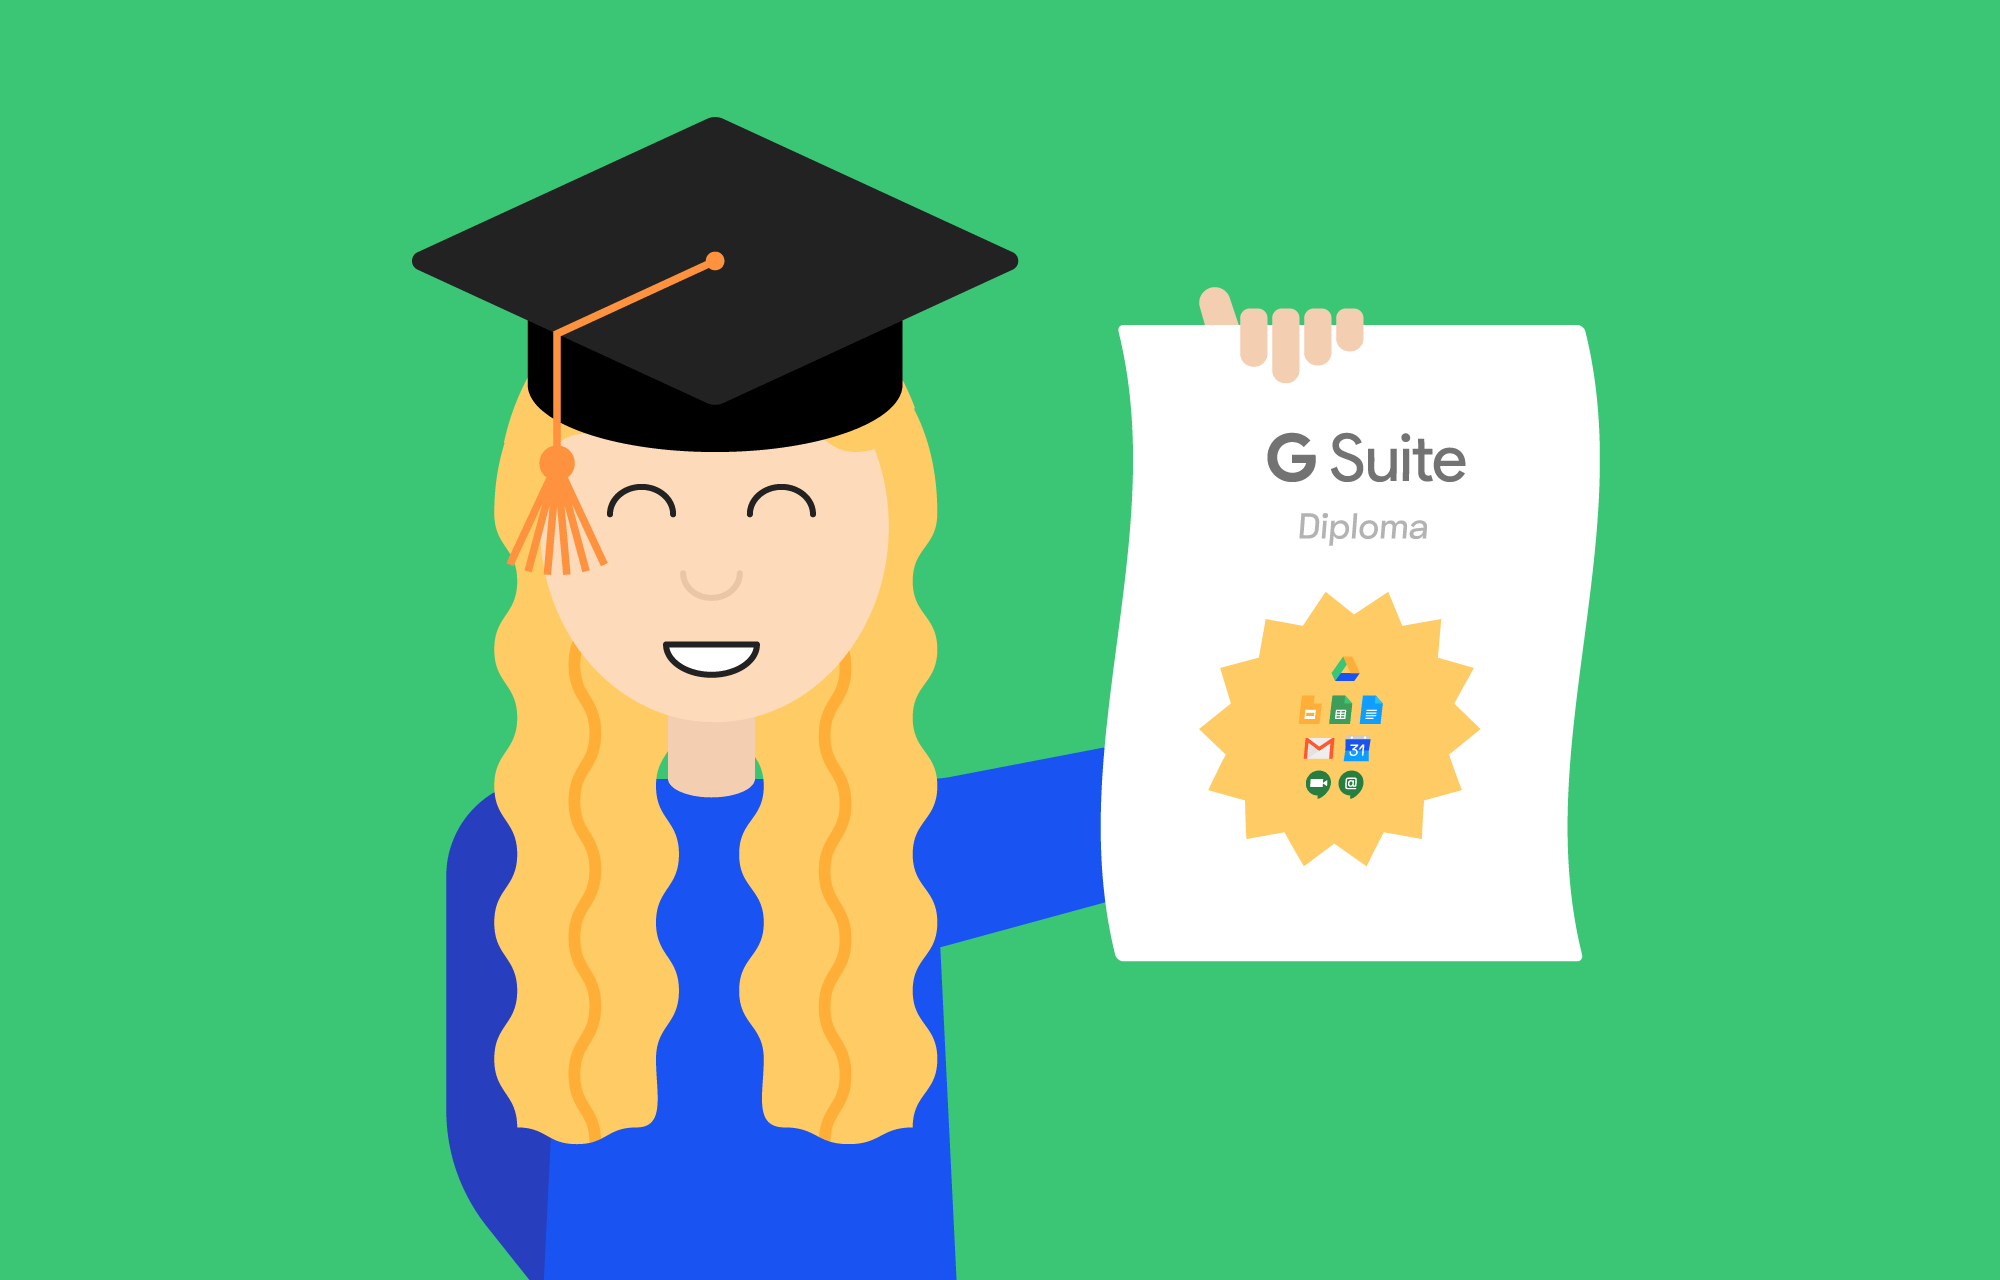 Training course in G Suite – Do I need it?